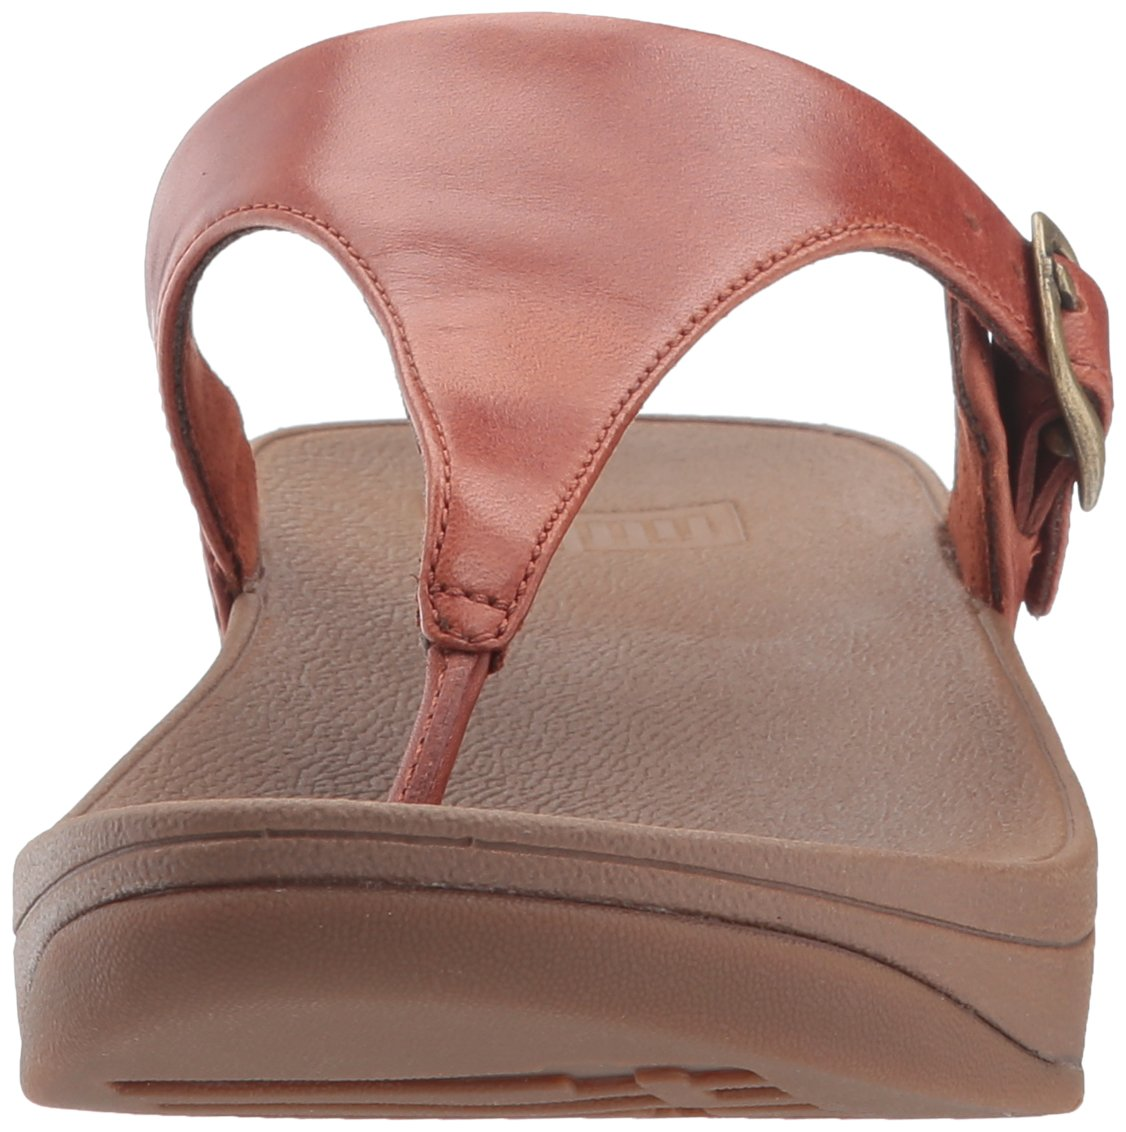 FitFlop Women's The Skinny Leather Toe-Thong Sandal, Dark Tan, 10 M US by FitFlop (Image #4)